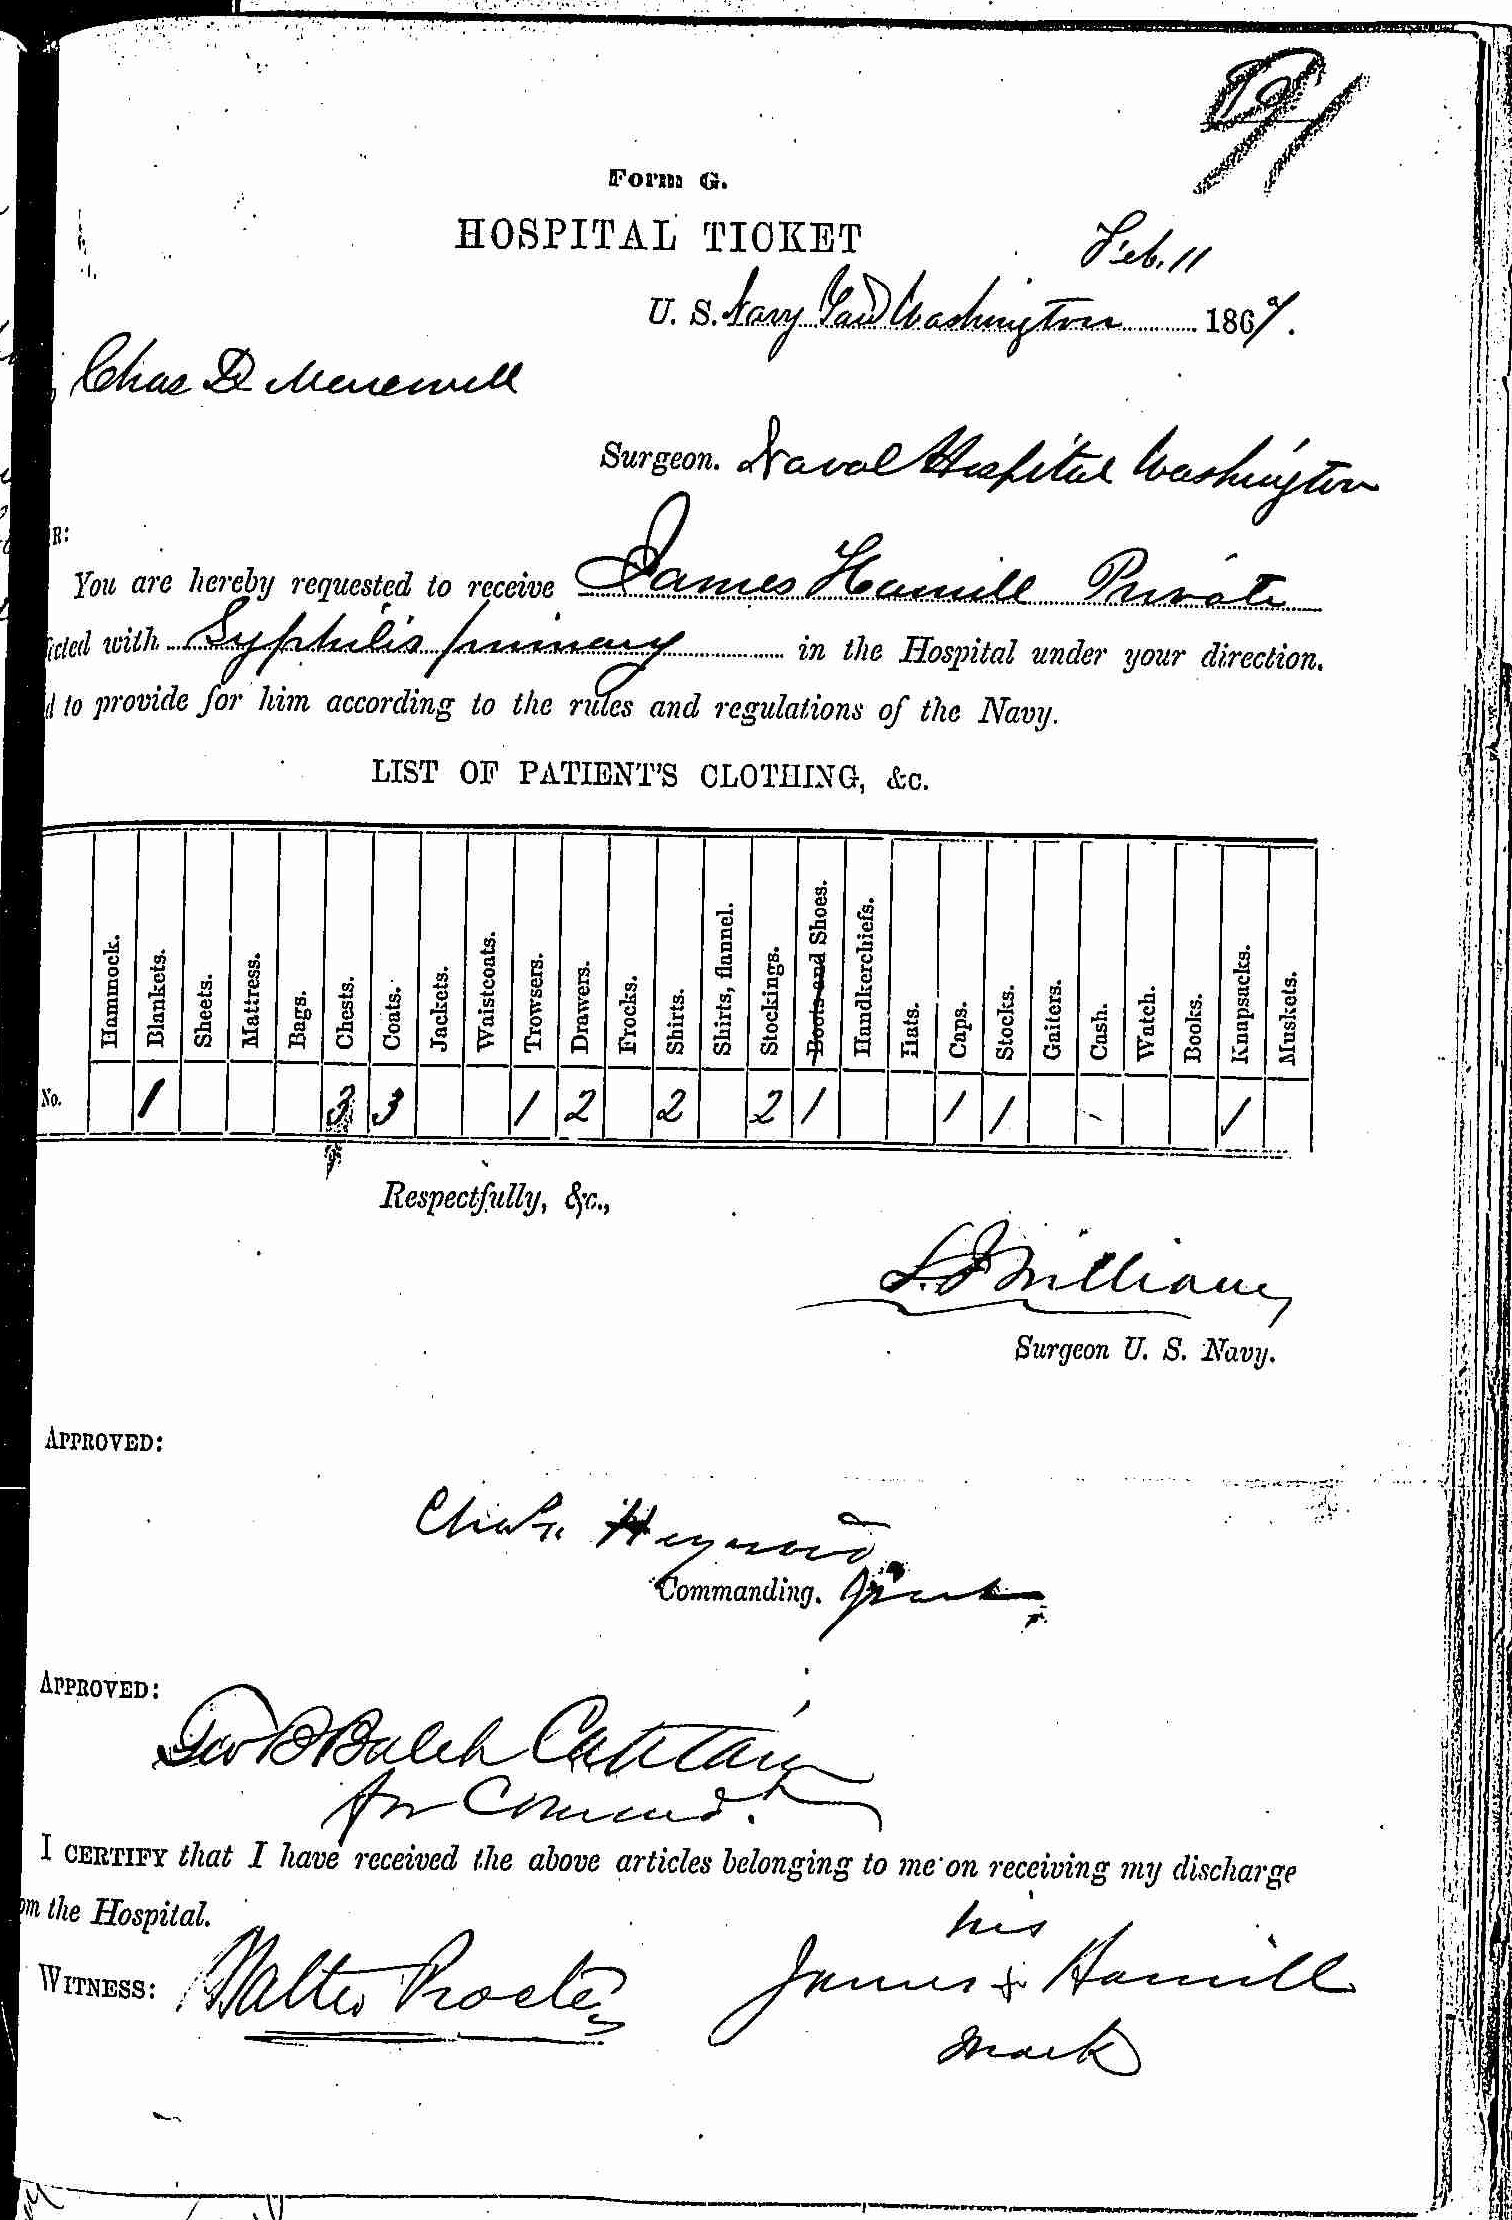 Entry for James Hamill (page 1 of 2) in the log Hospital Tickets and Case Papers - Naval Hospital - Washington, D.C. - 1865-68